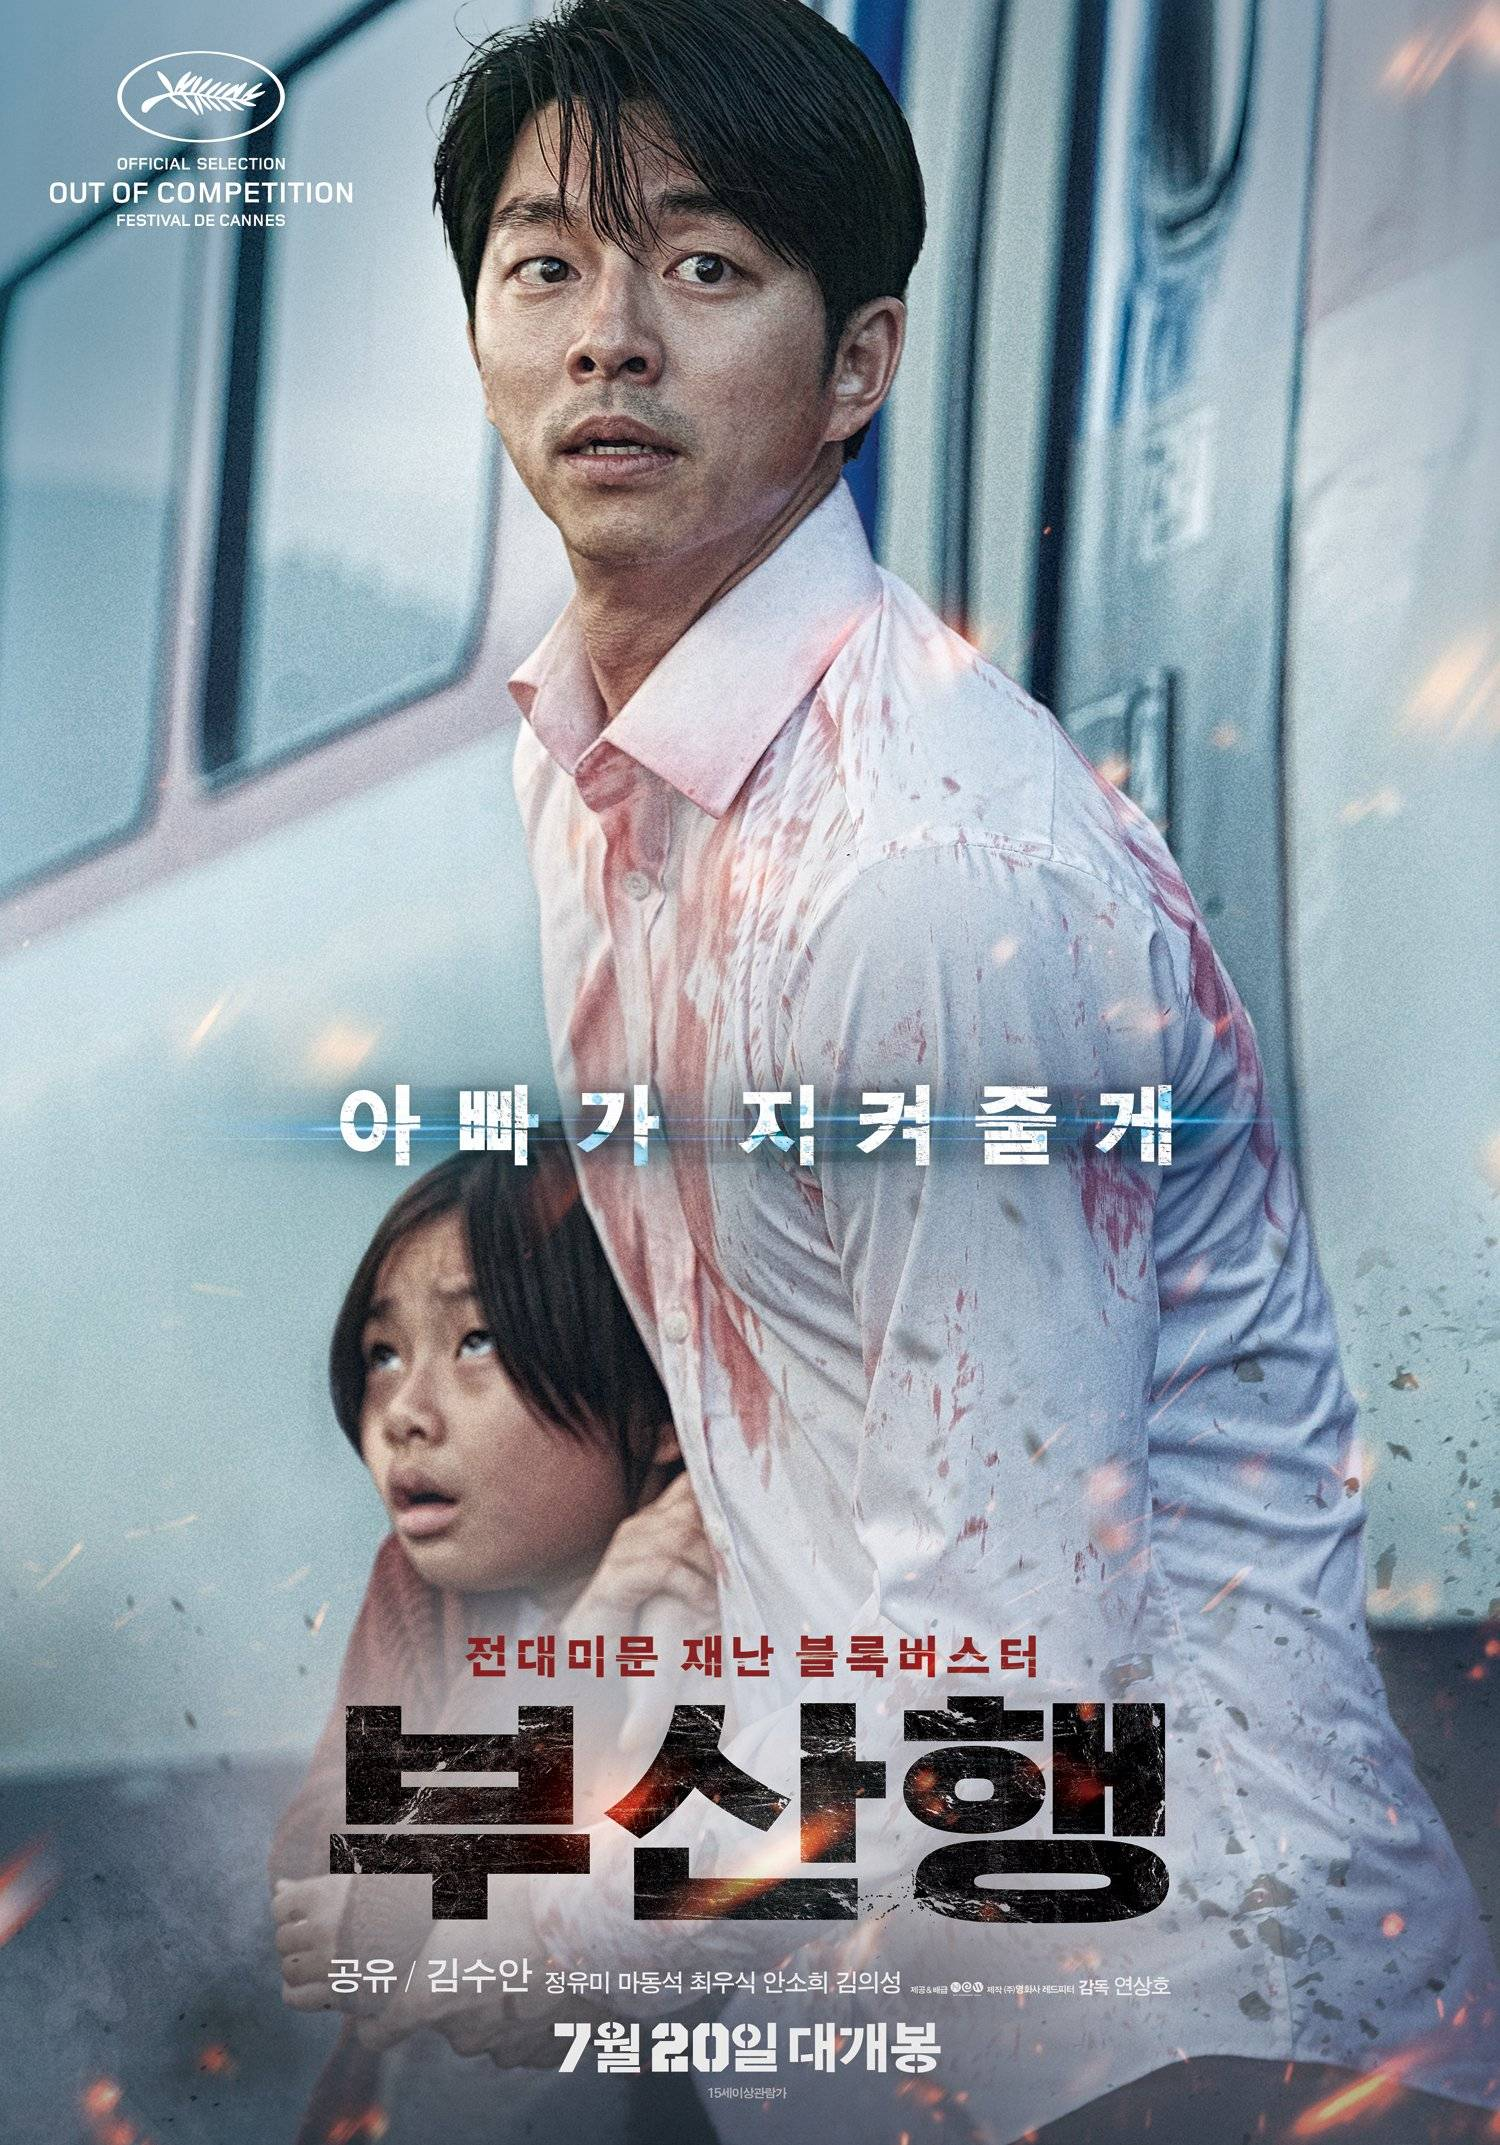 http://www.hancinema.net/photos/fullsizephoto739681.jpg